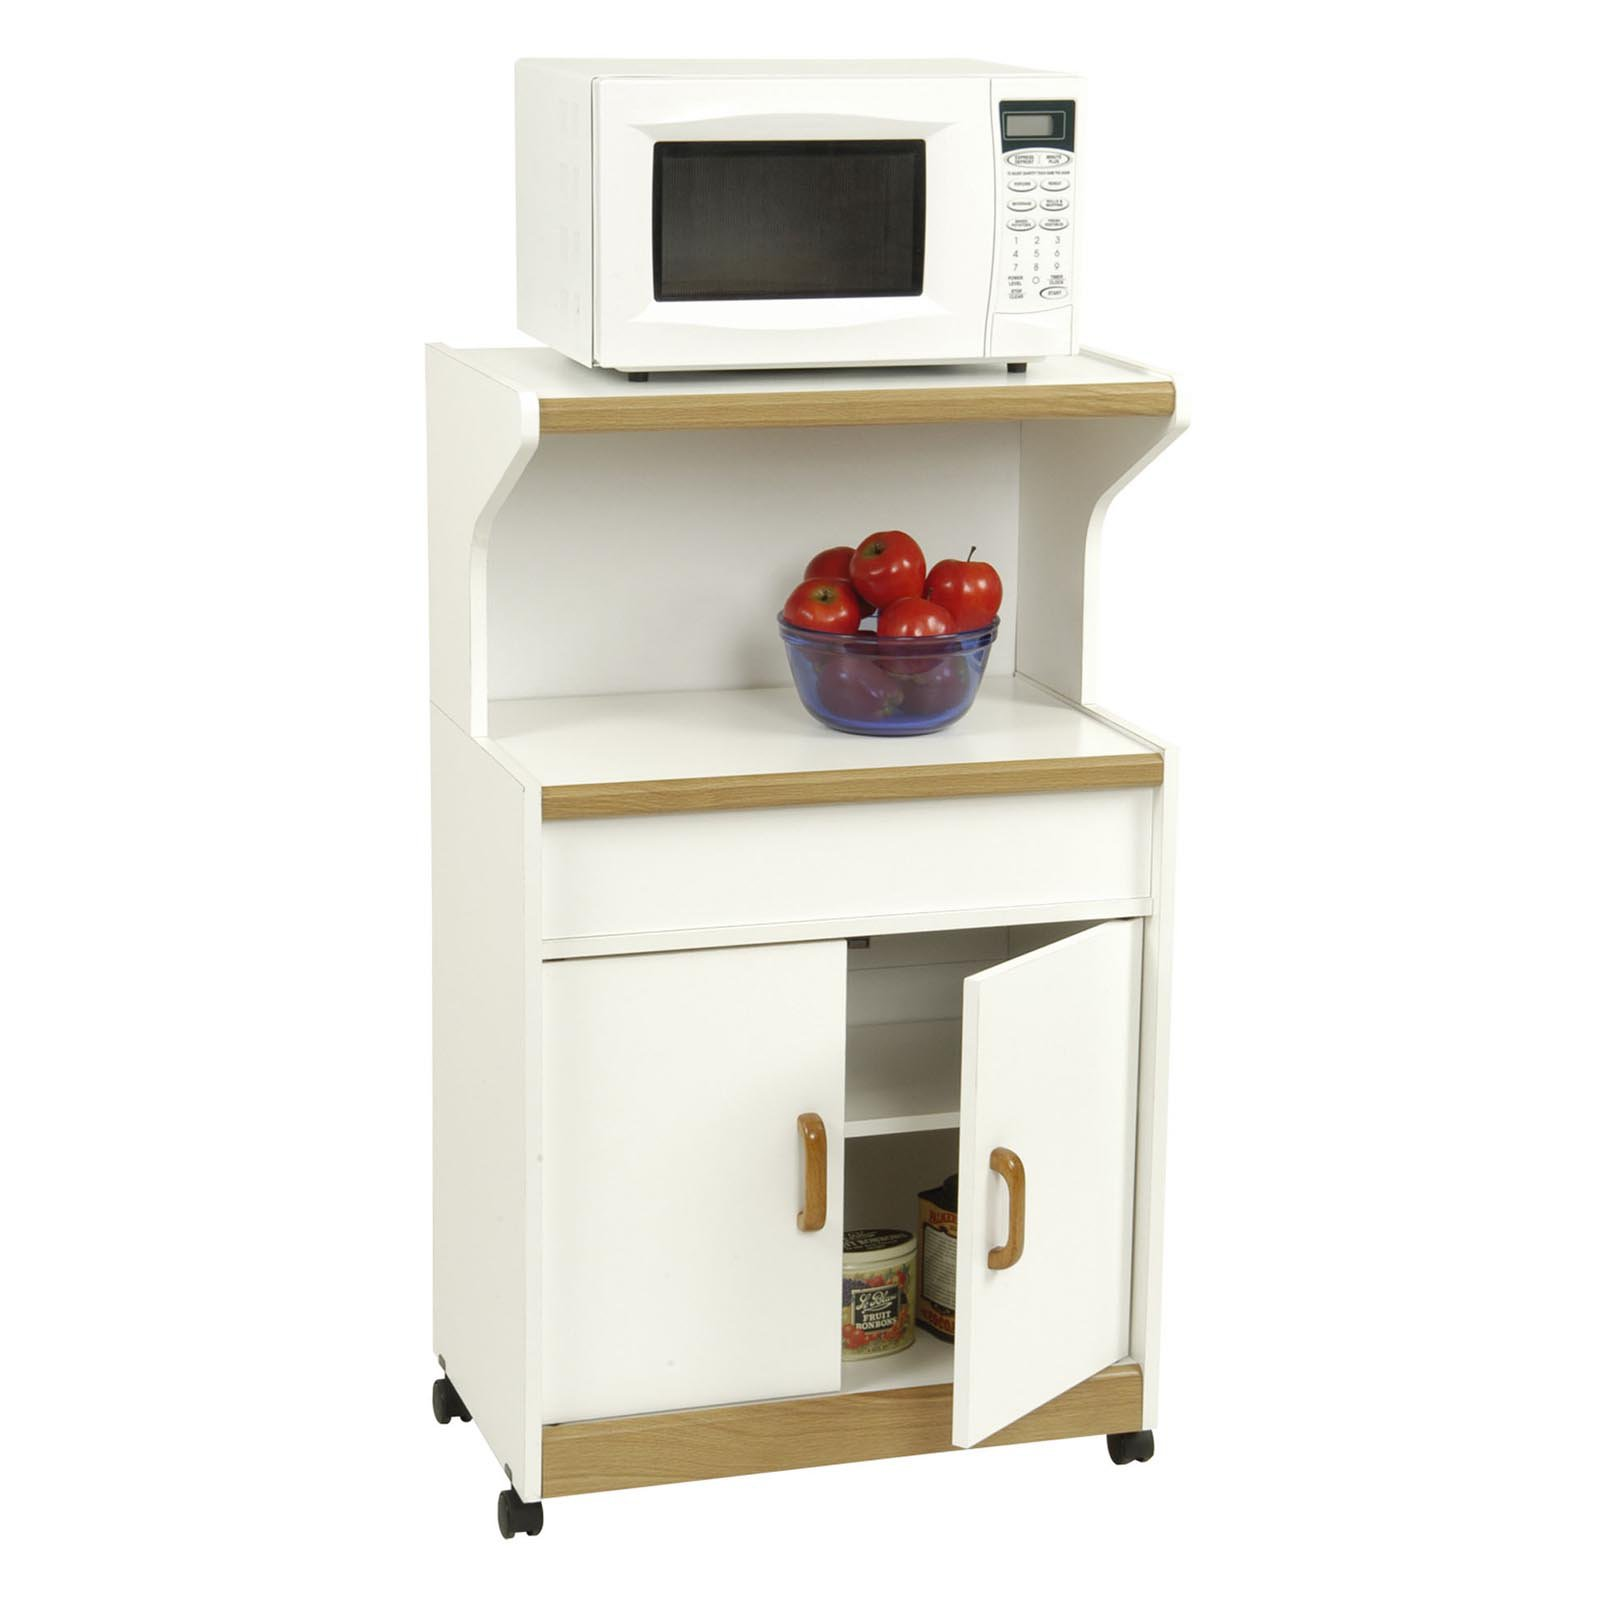 Superieur Microwave Cabinet With Shelves, White   Walmart.com